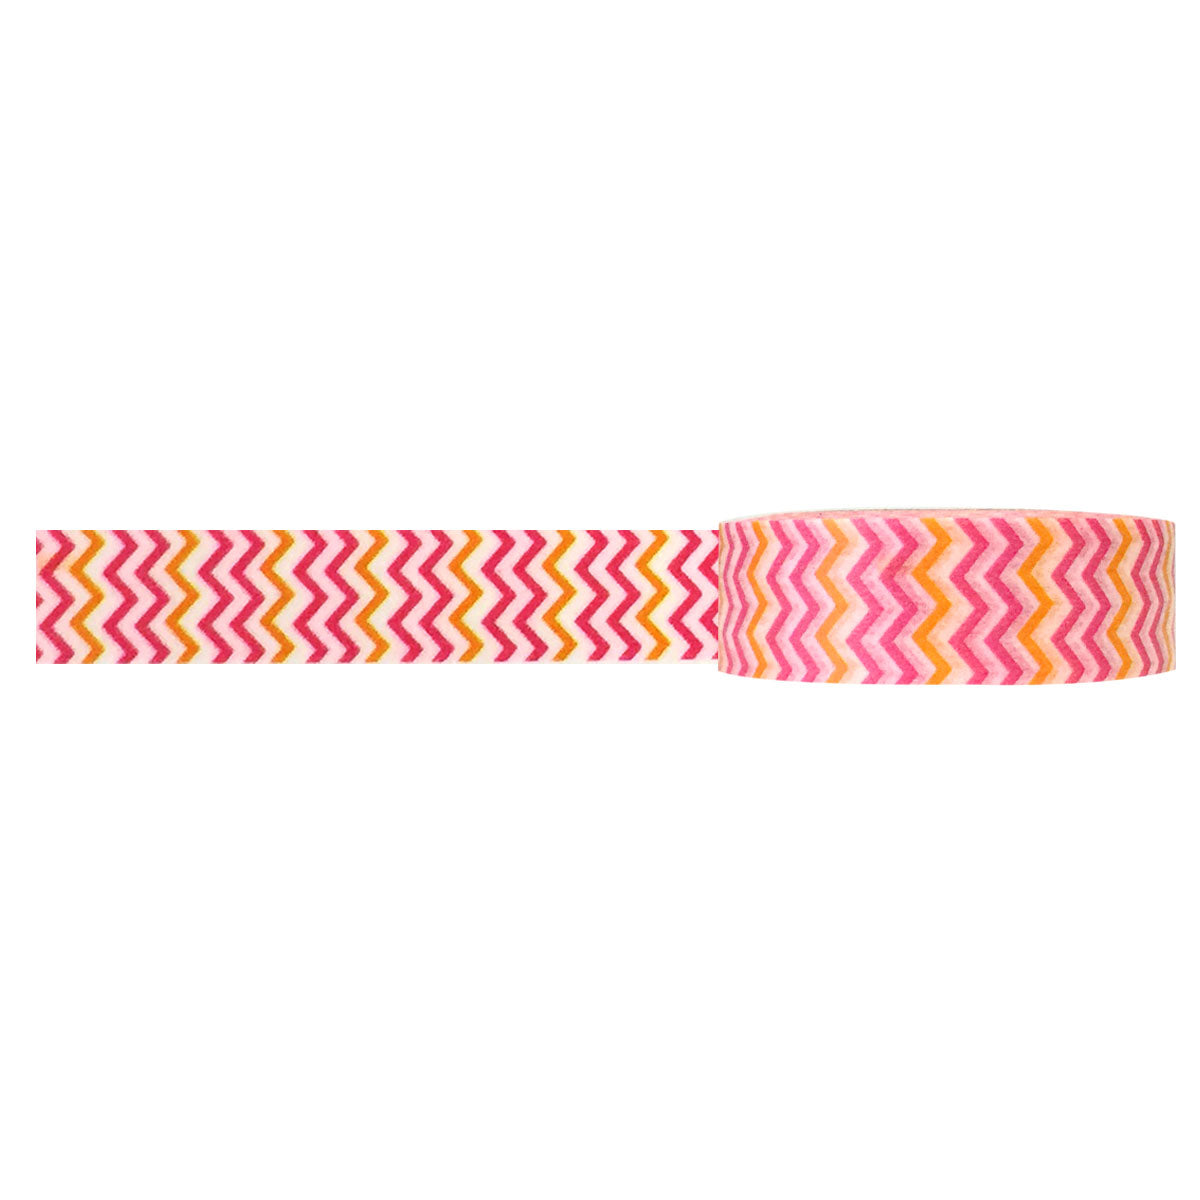 Wrapables Colorful Patterns Washi Masking Tape 1